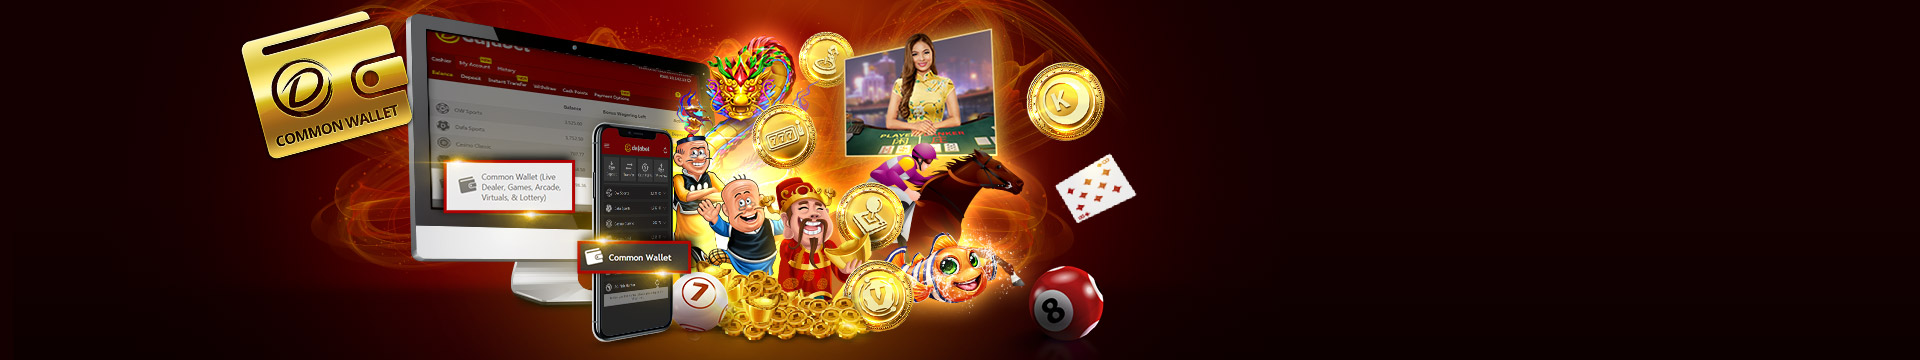 Up to 240 Malaysian Ringgit will be claimed with Dafabet Casino First Deposit Bonus